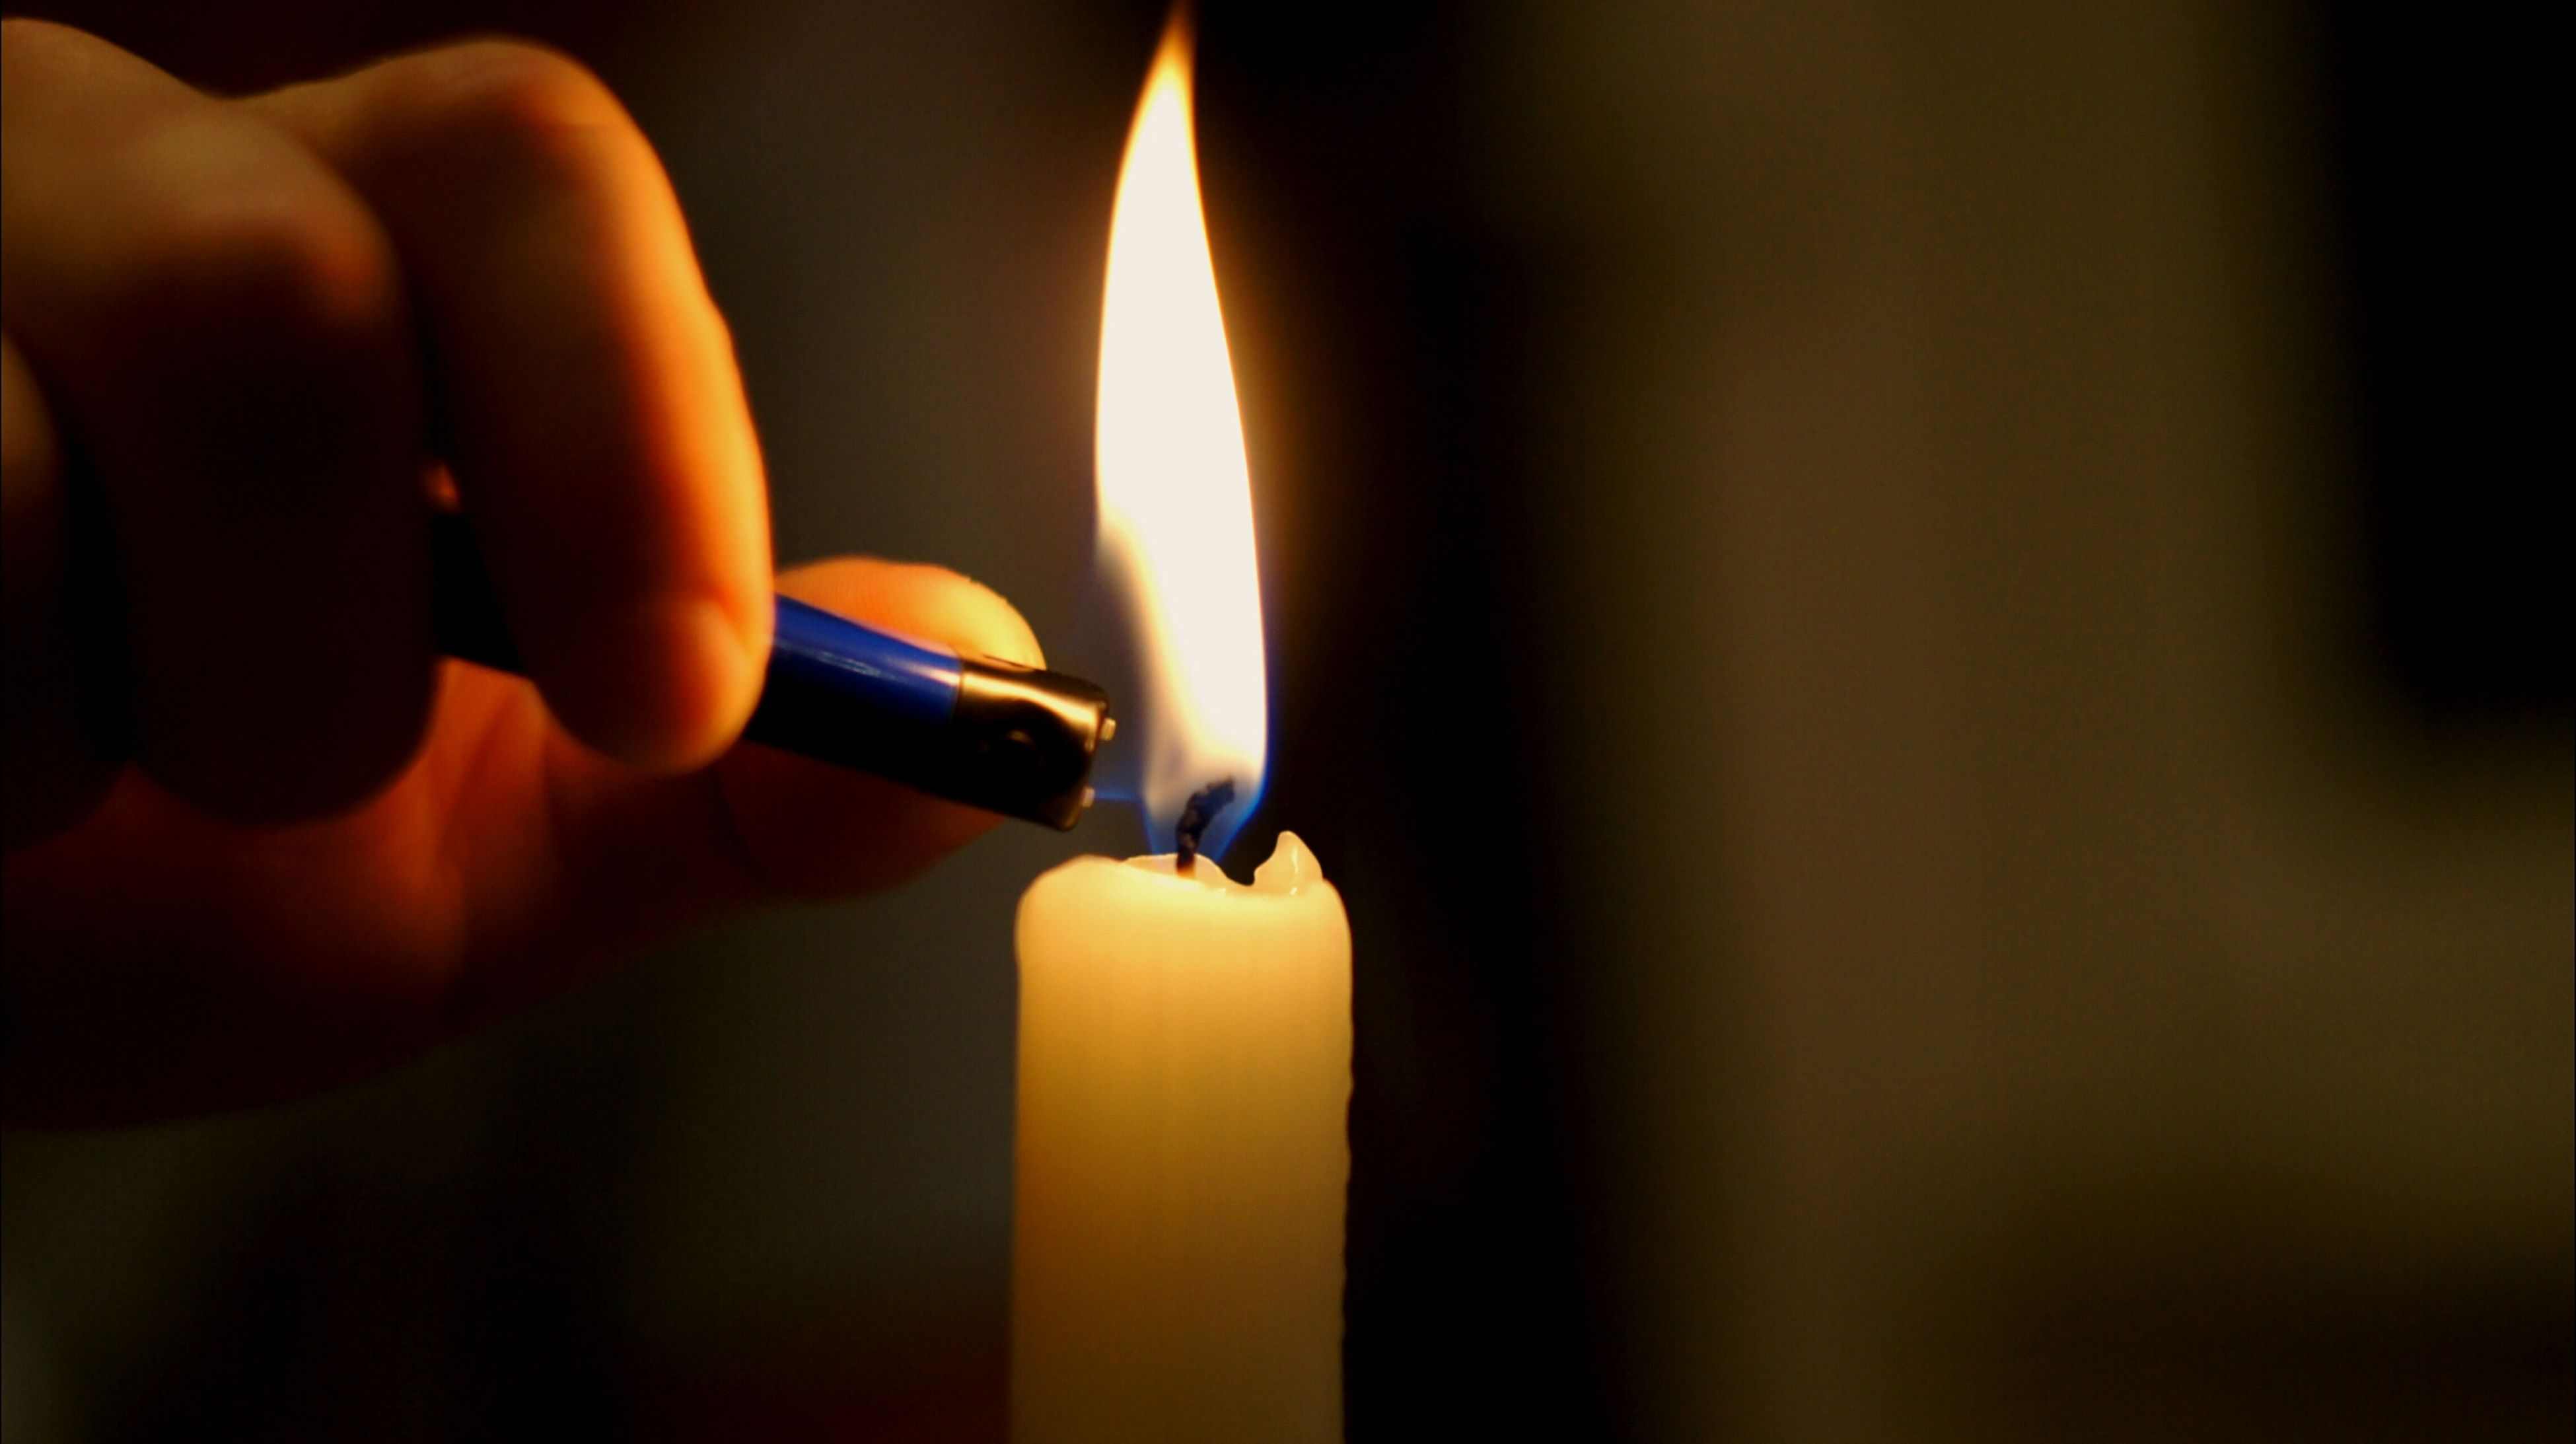 indoors, person, part of, close-up, flame, burning, heat - temperature, cropped, holding, fire - natural phenomenon, glowing, human finger, focus on foreground, illuminated, candle, selective focus, orange color